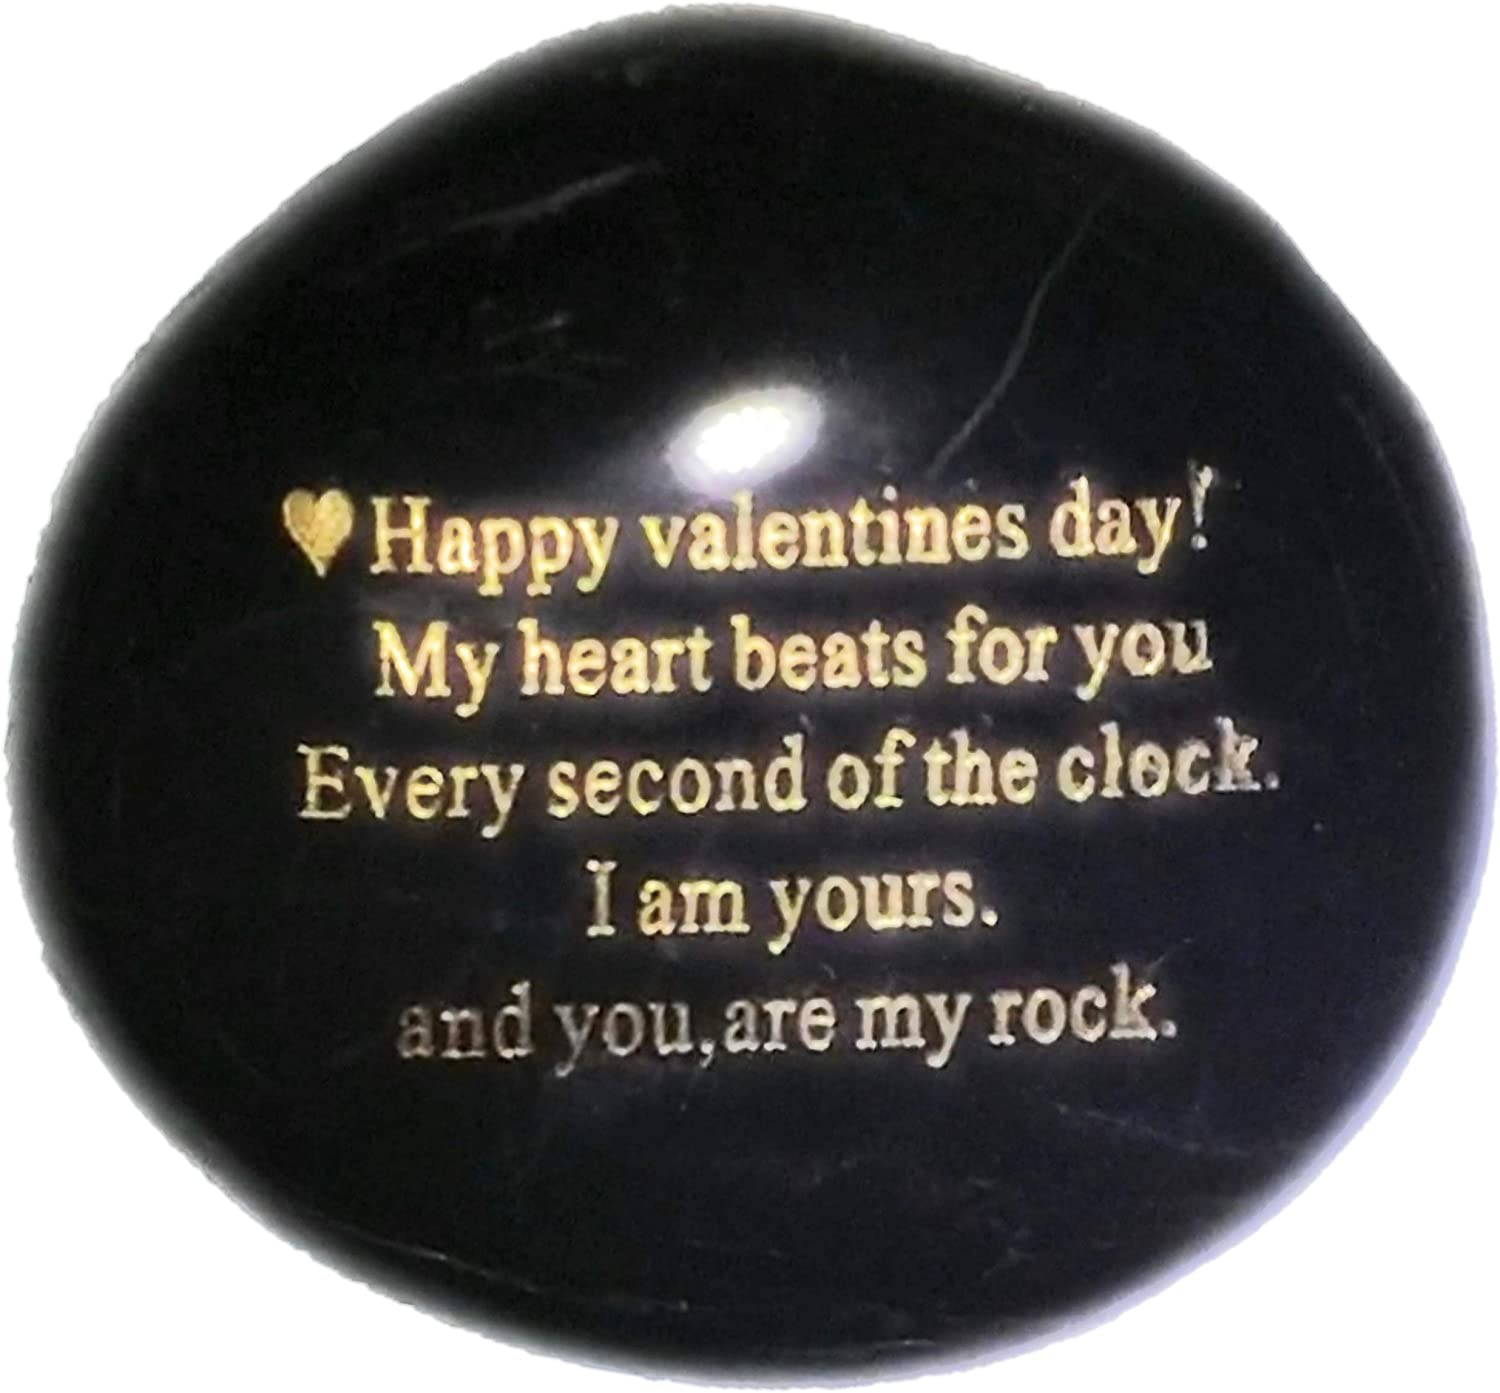 """Probably the Best Valentines Day Gifts for him or her you can buy """"Happy Valentines Day! My heart Beats for you Every second of the clock. I am yours. And you, are my rock"""" - Engraved Rock Unique gift"""